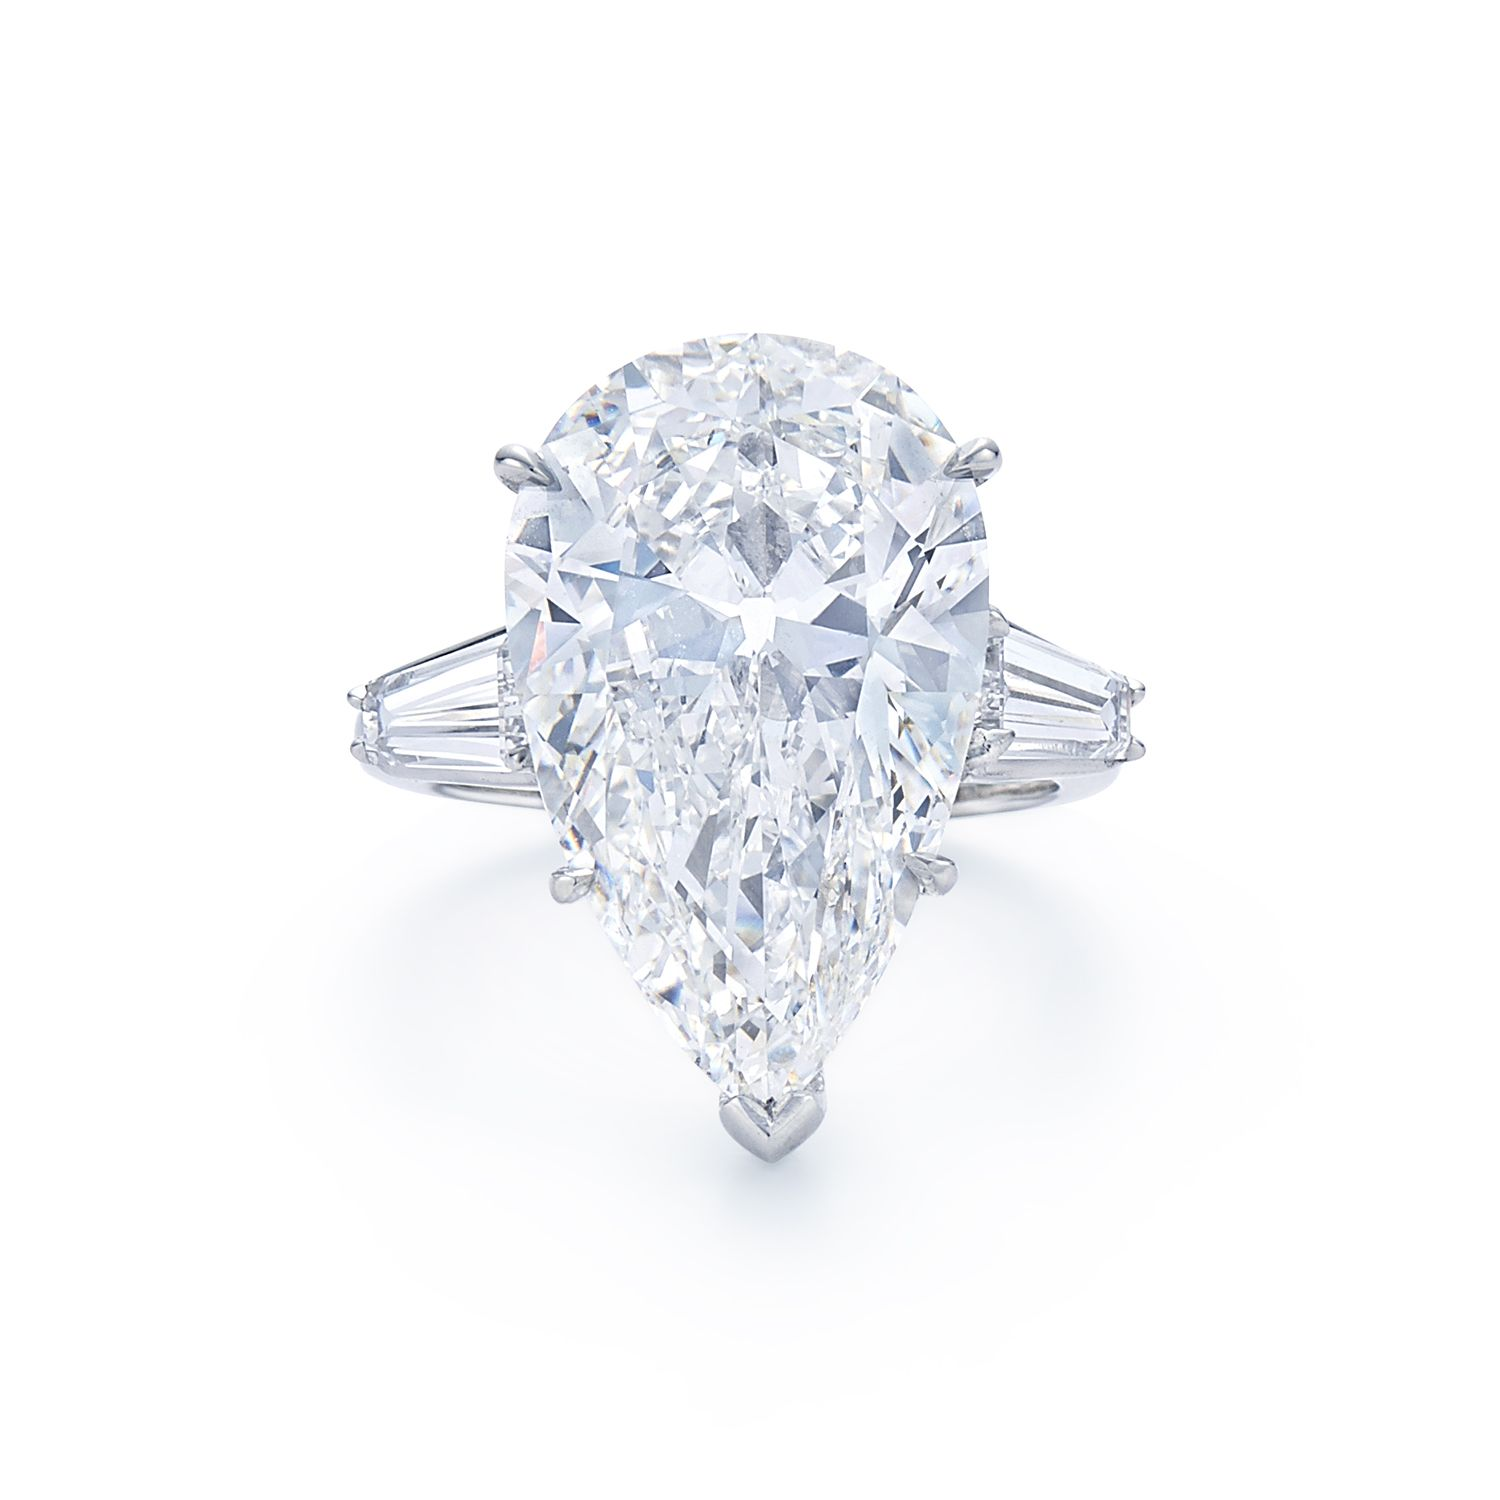 Pear shape diamond ring with tapered baguette side stones Set in